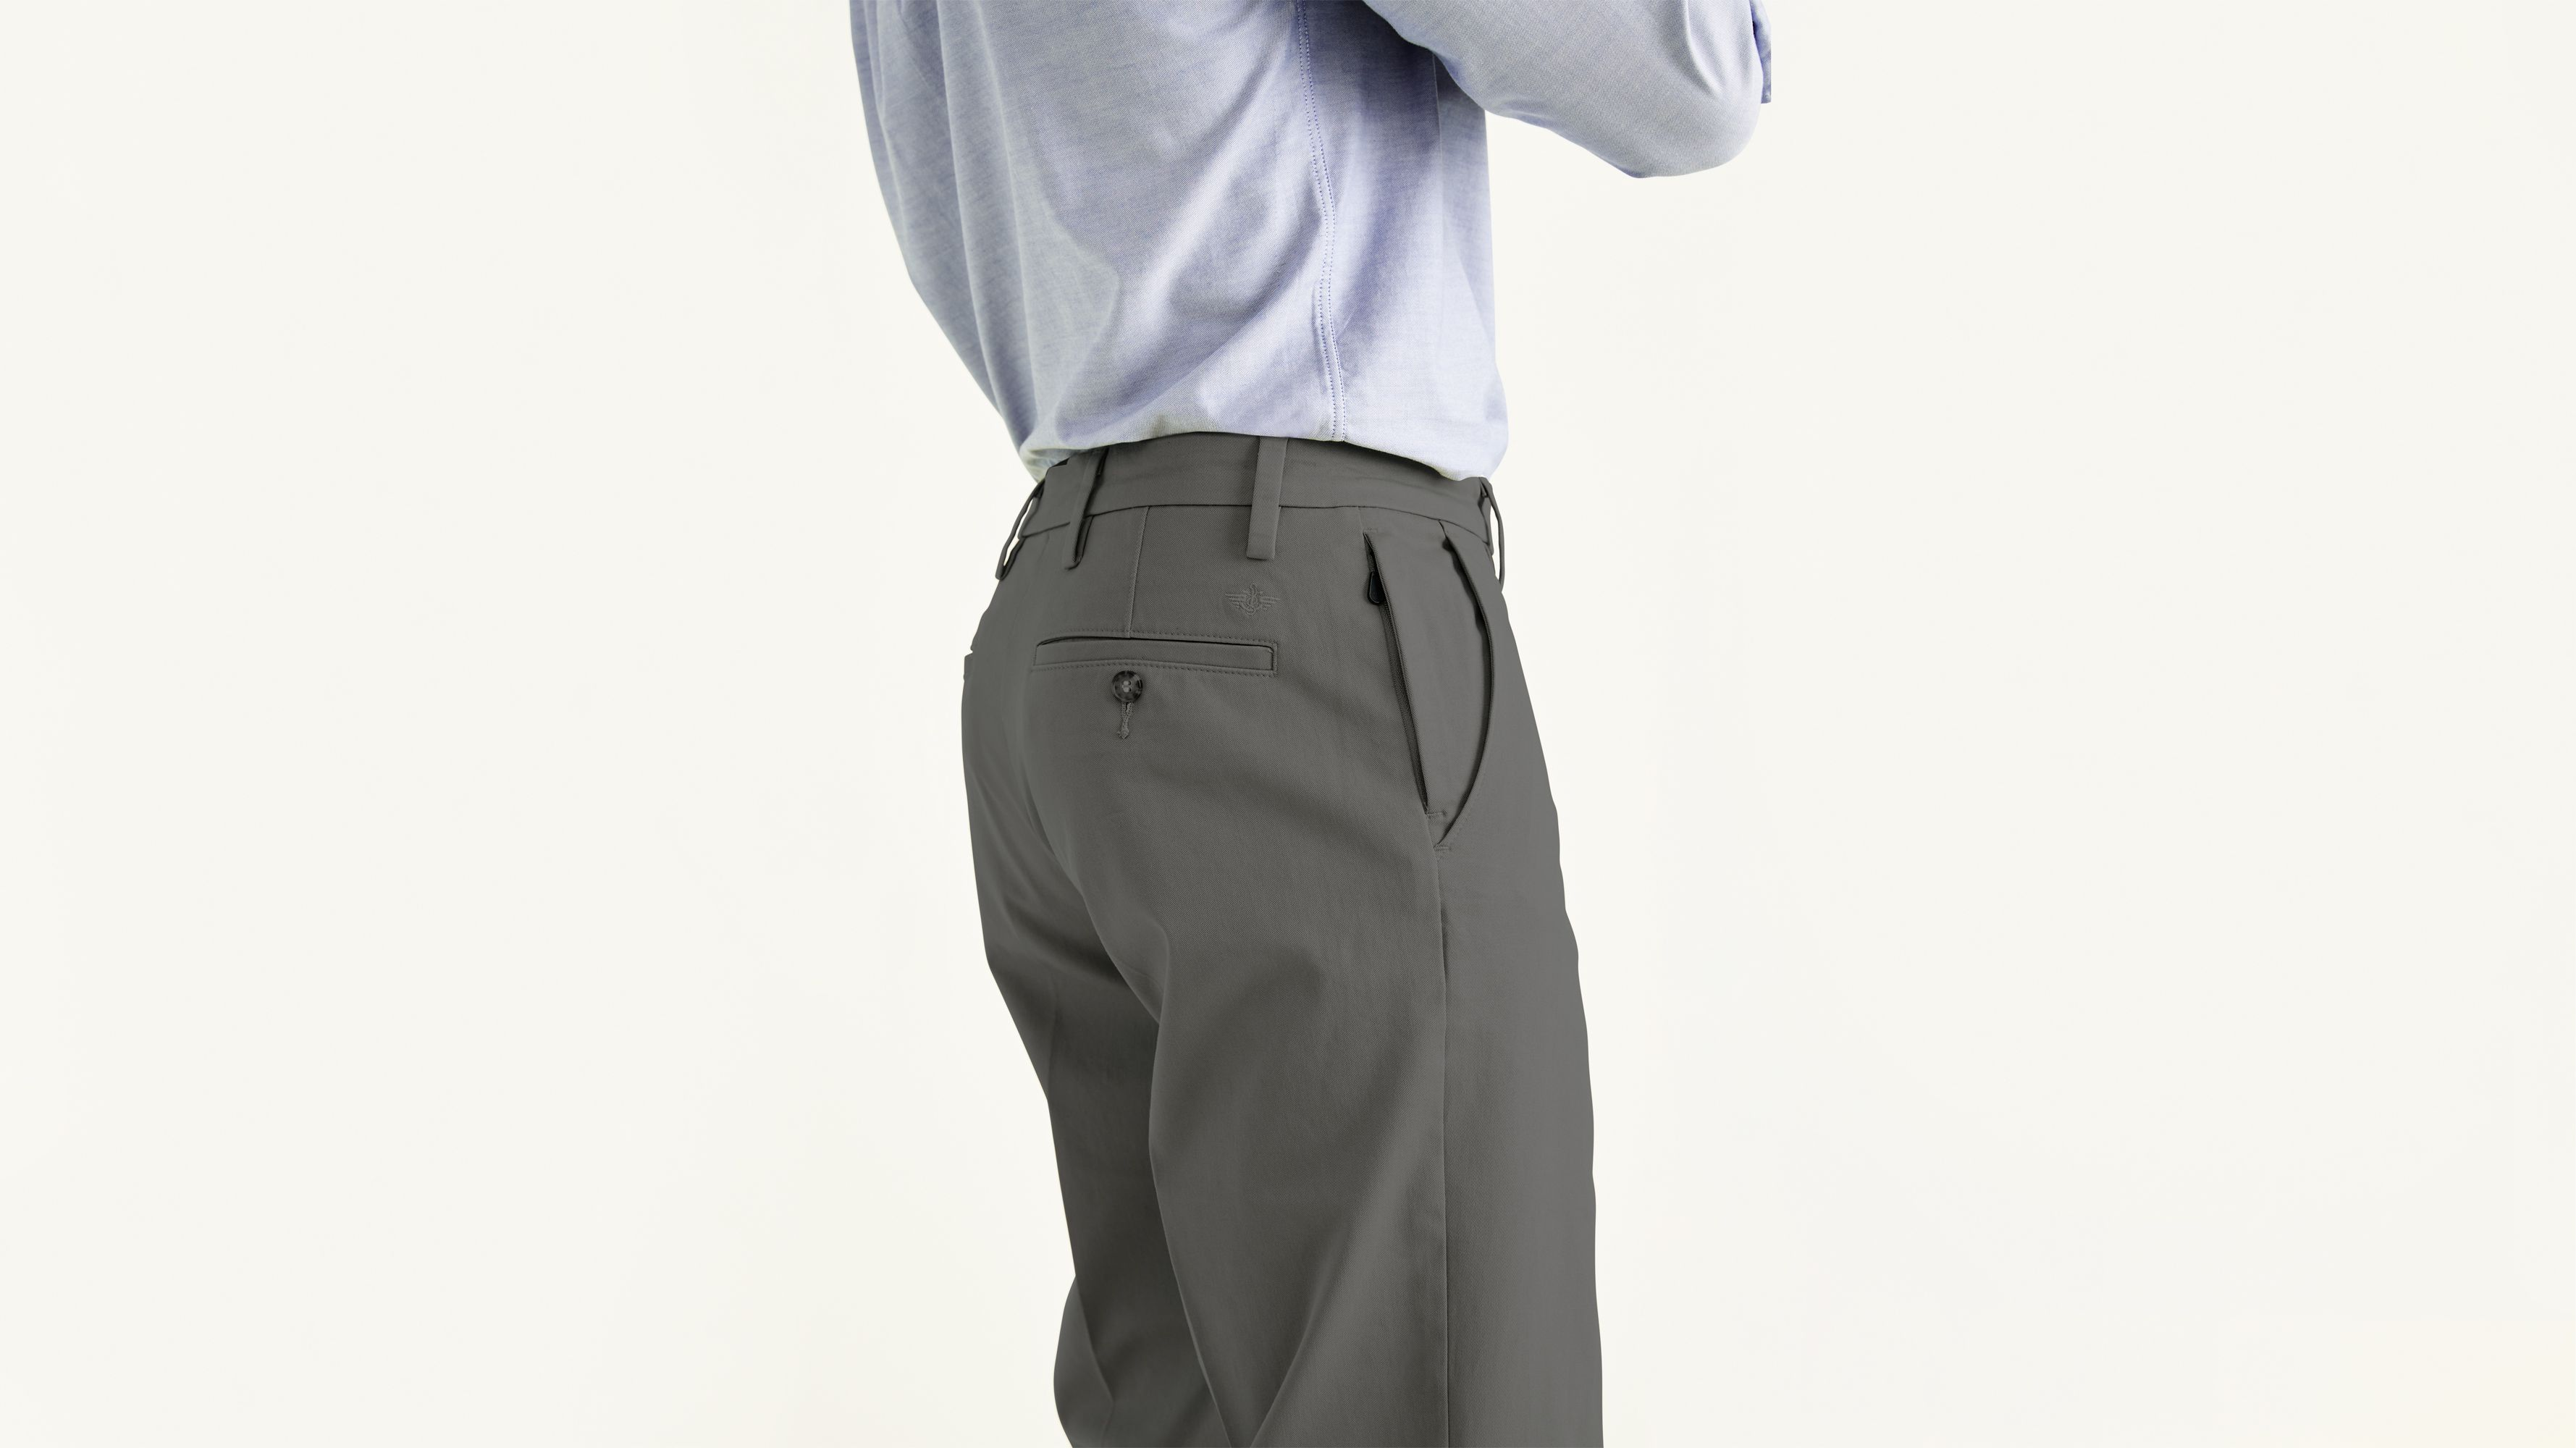 1ffbe44d0e4e Workday Khaki Pants With Smart 360 Flex™, Classic Fit - Grey 399830004 |  Dockers® US